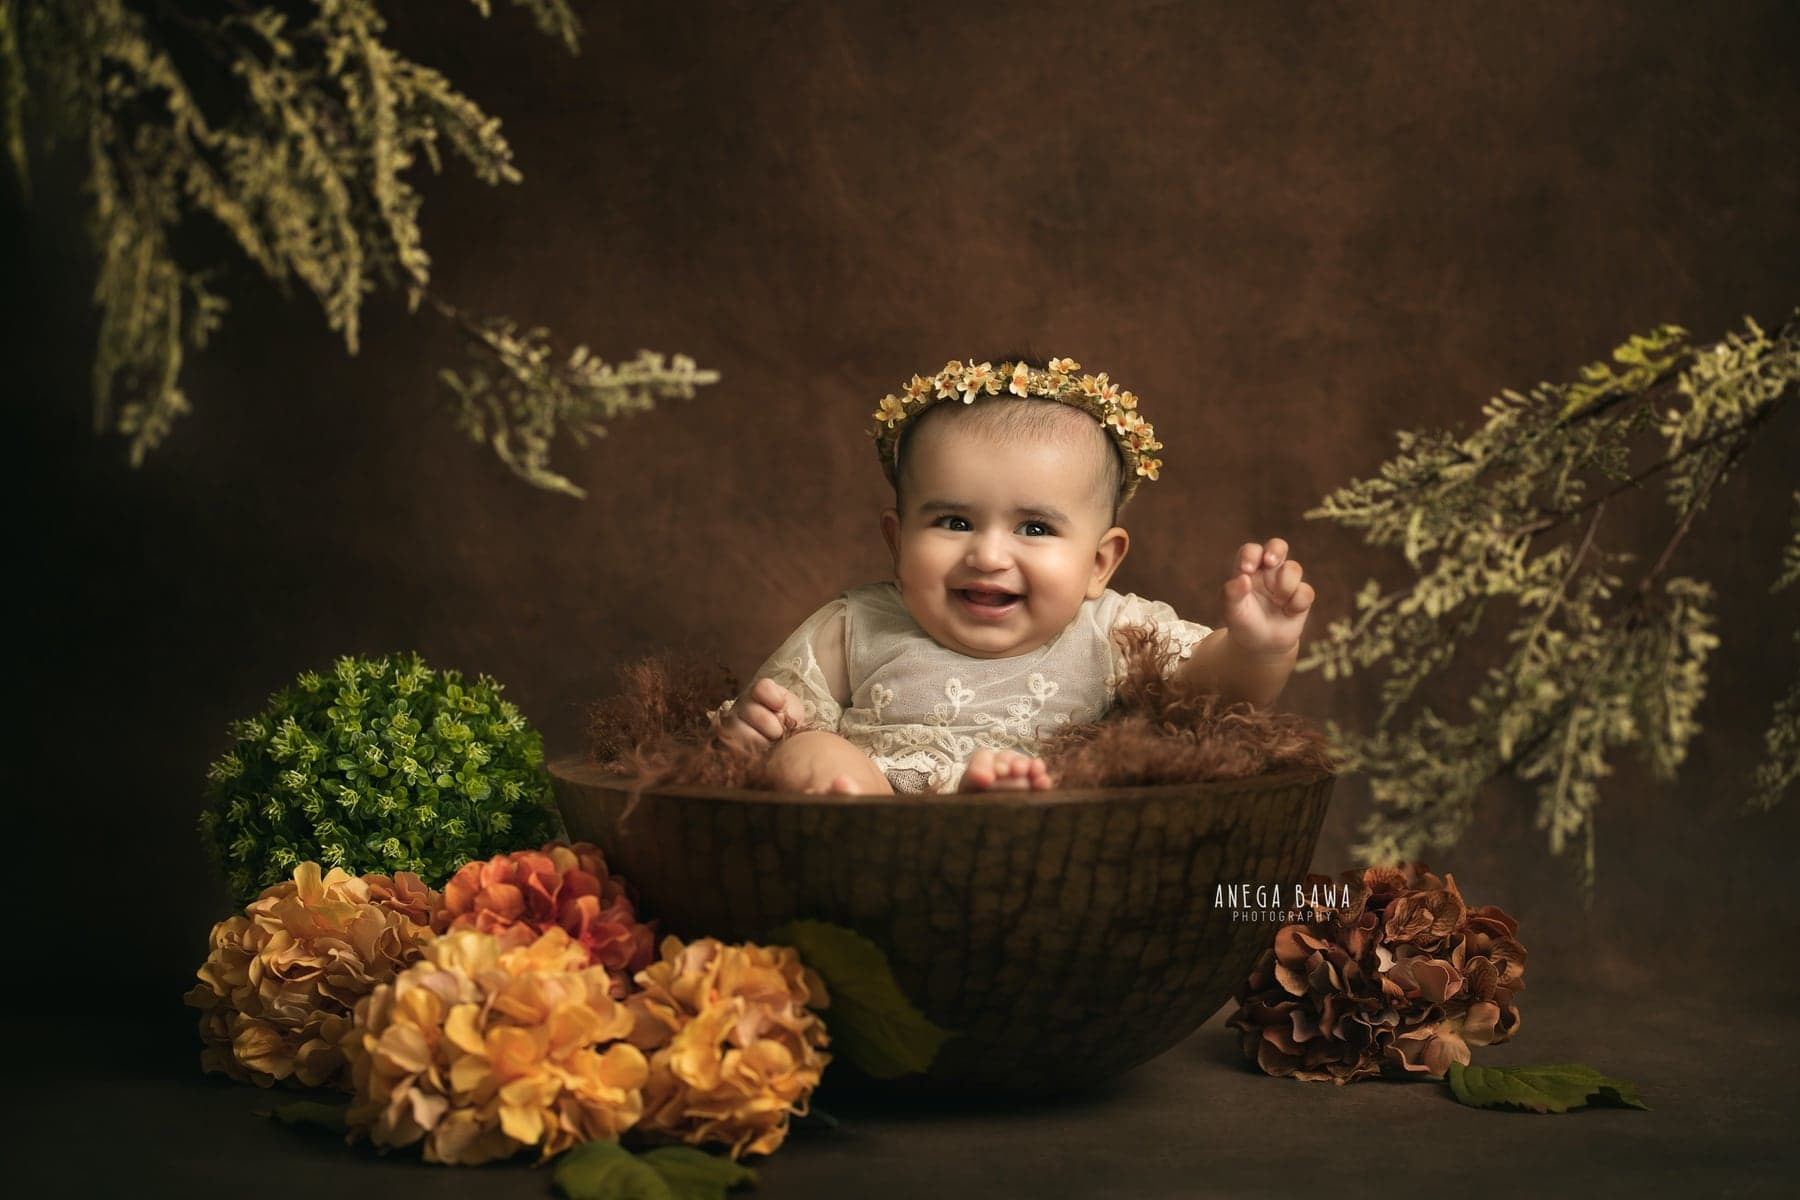 242115-brown-background-green-floral-baby-photography-delhi-5-6-7-months-baby-photoshoot-gurgaon-anega-bawa